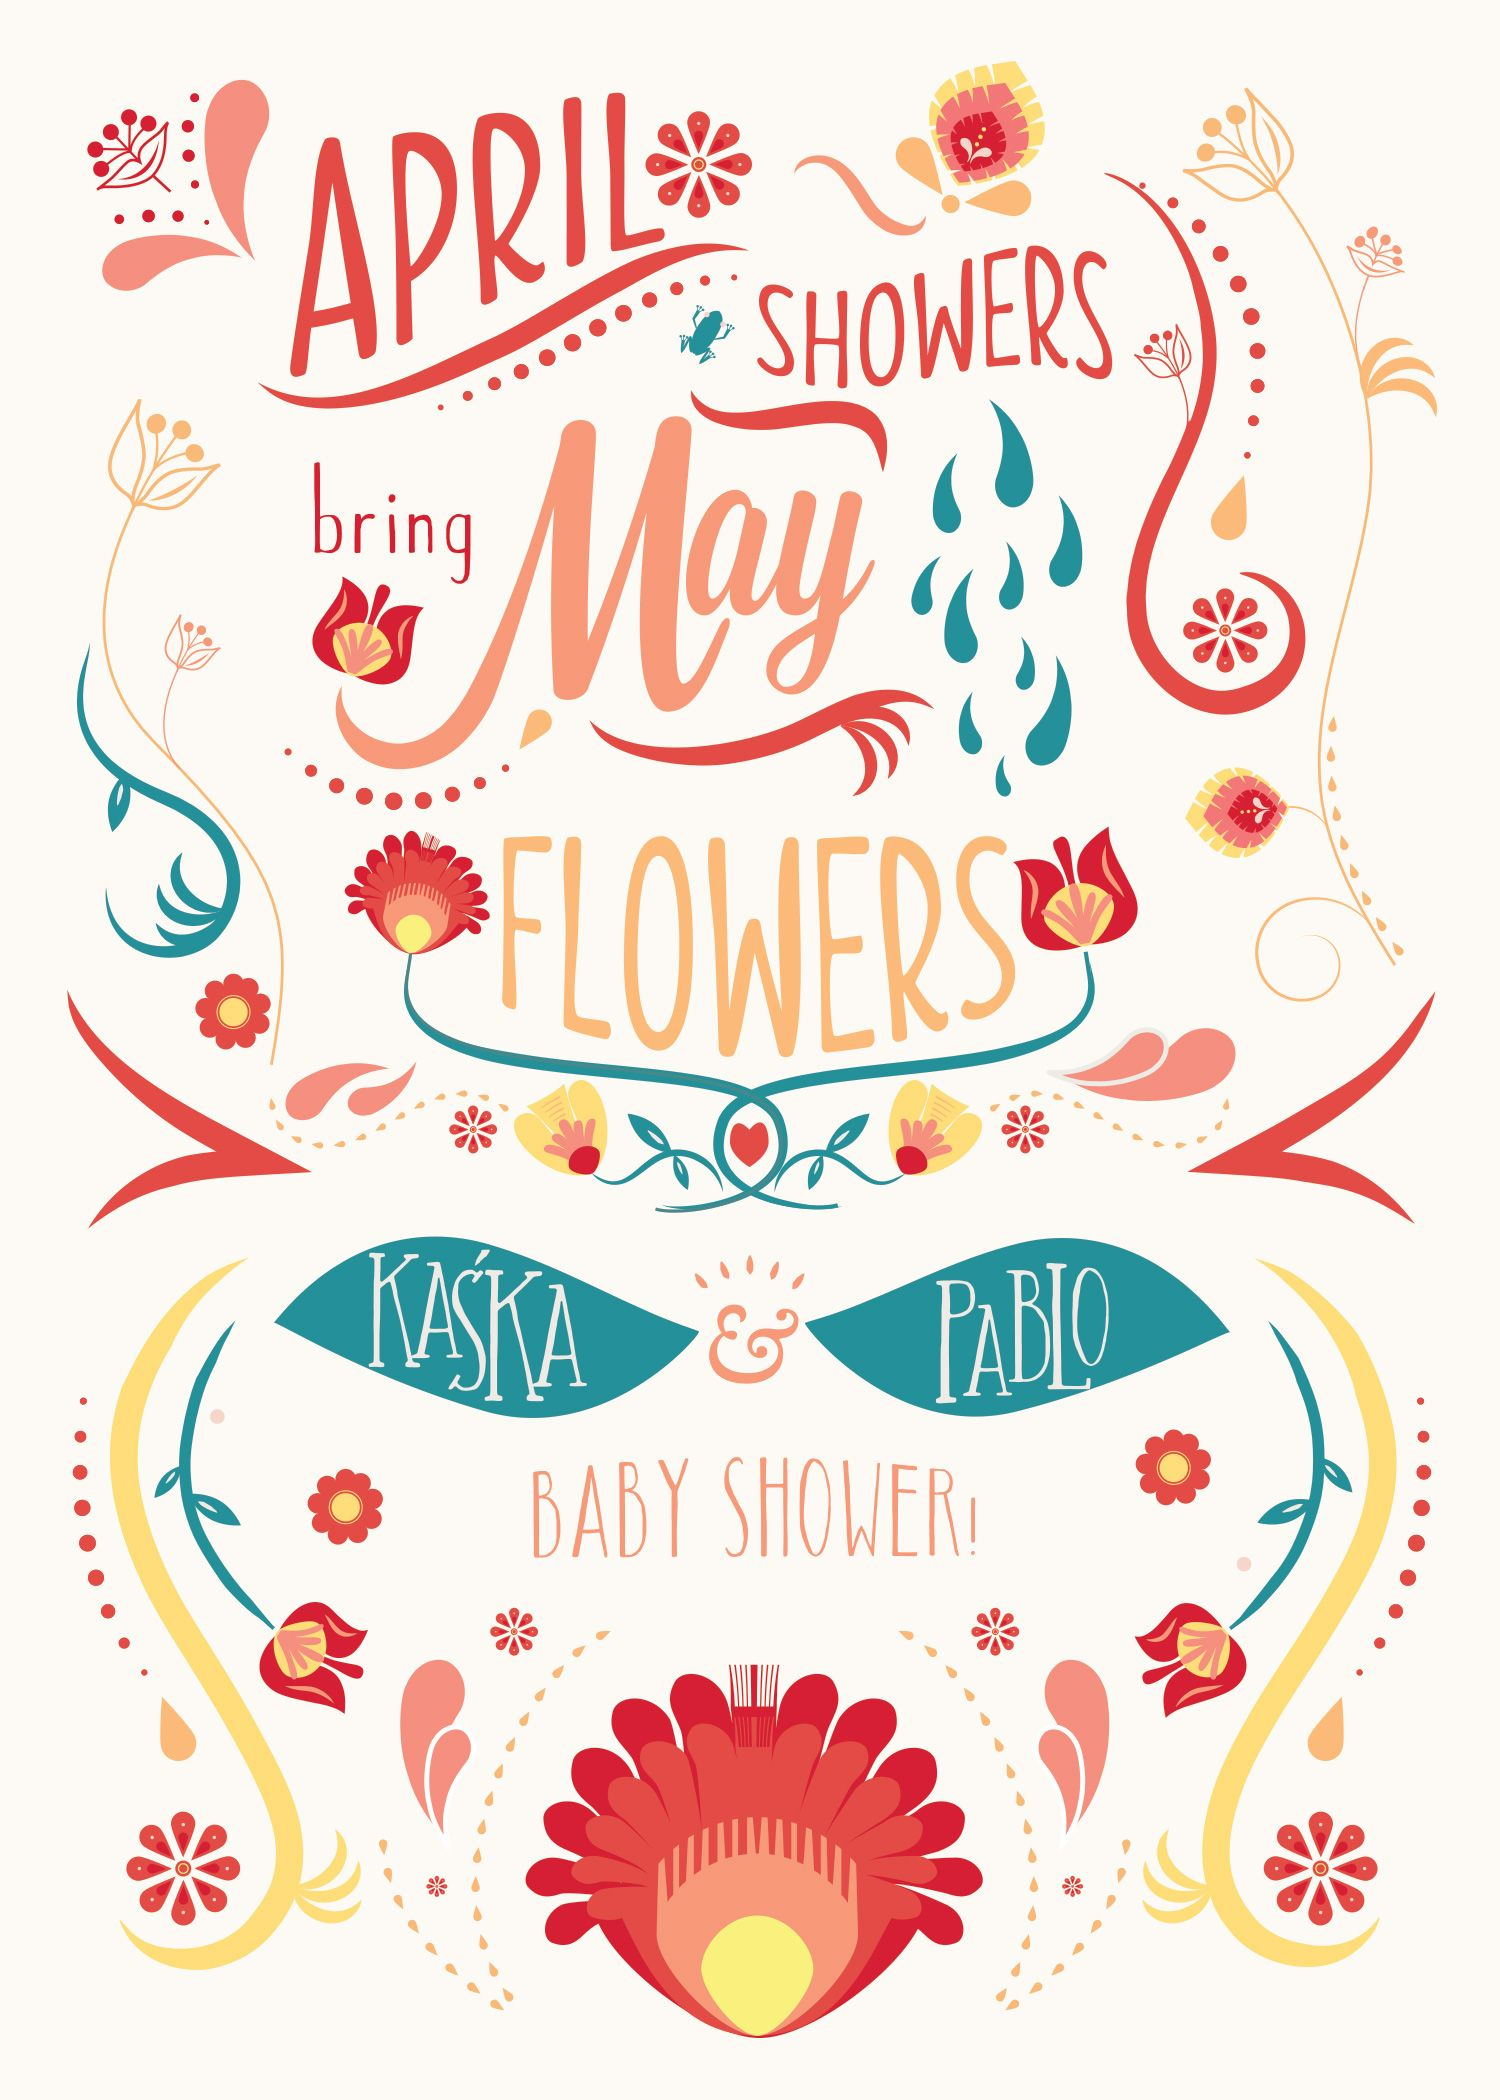 April Showers Bring May Flowers | liannierios.com | May